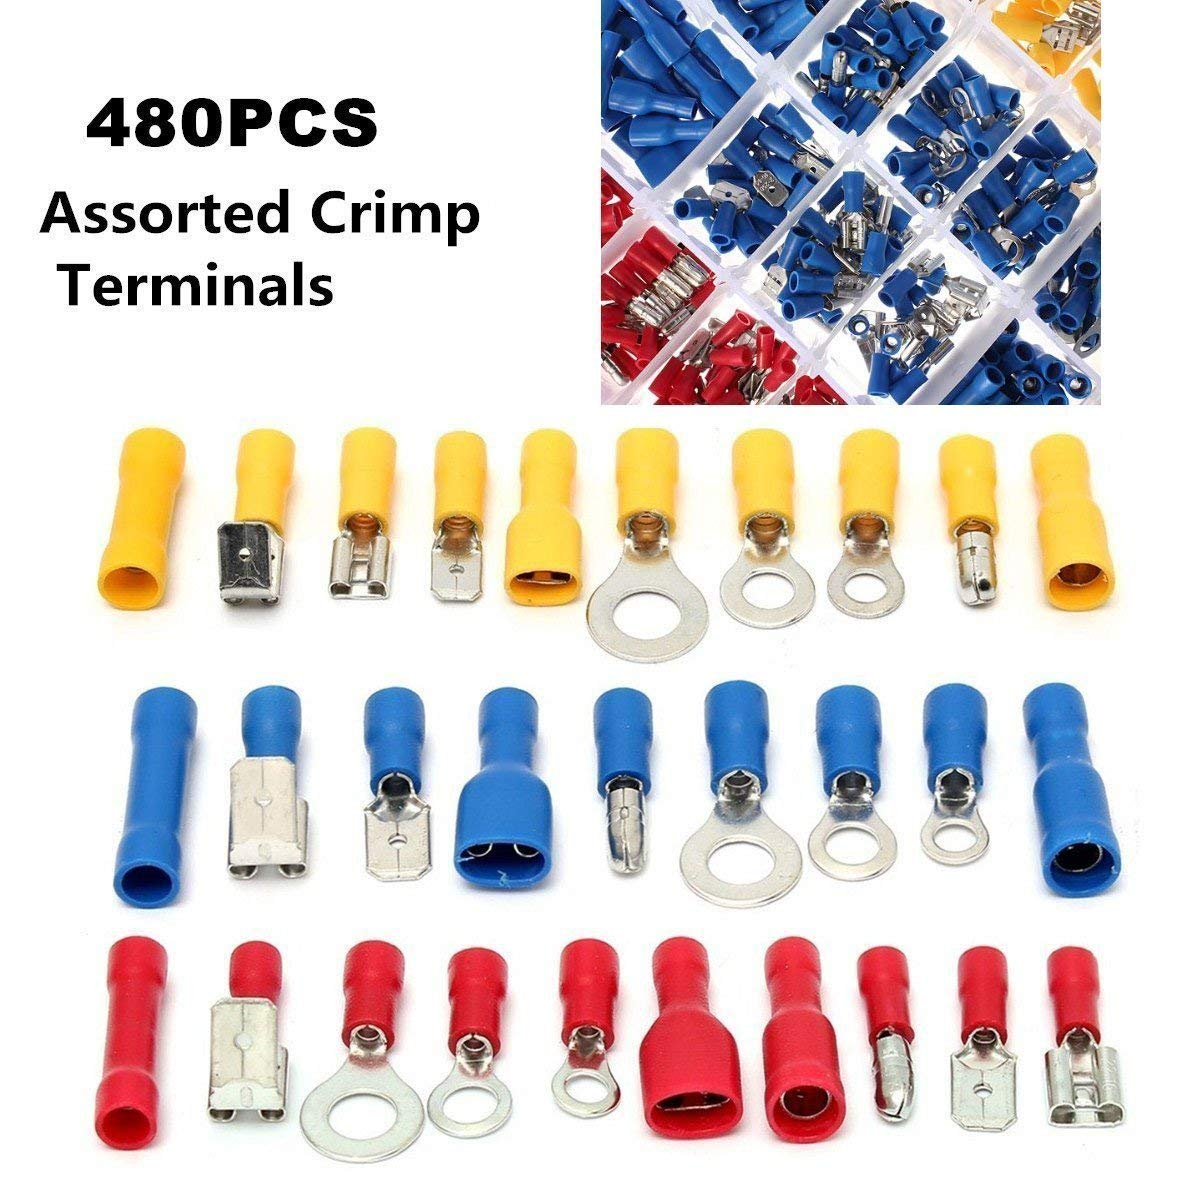 480pcs Premium Quality Assorted Insulated Electrical Wire Terminals Crimp Connectors Ring Spade Mixed Set by Darius